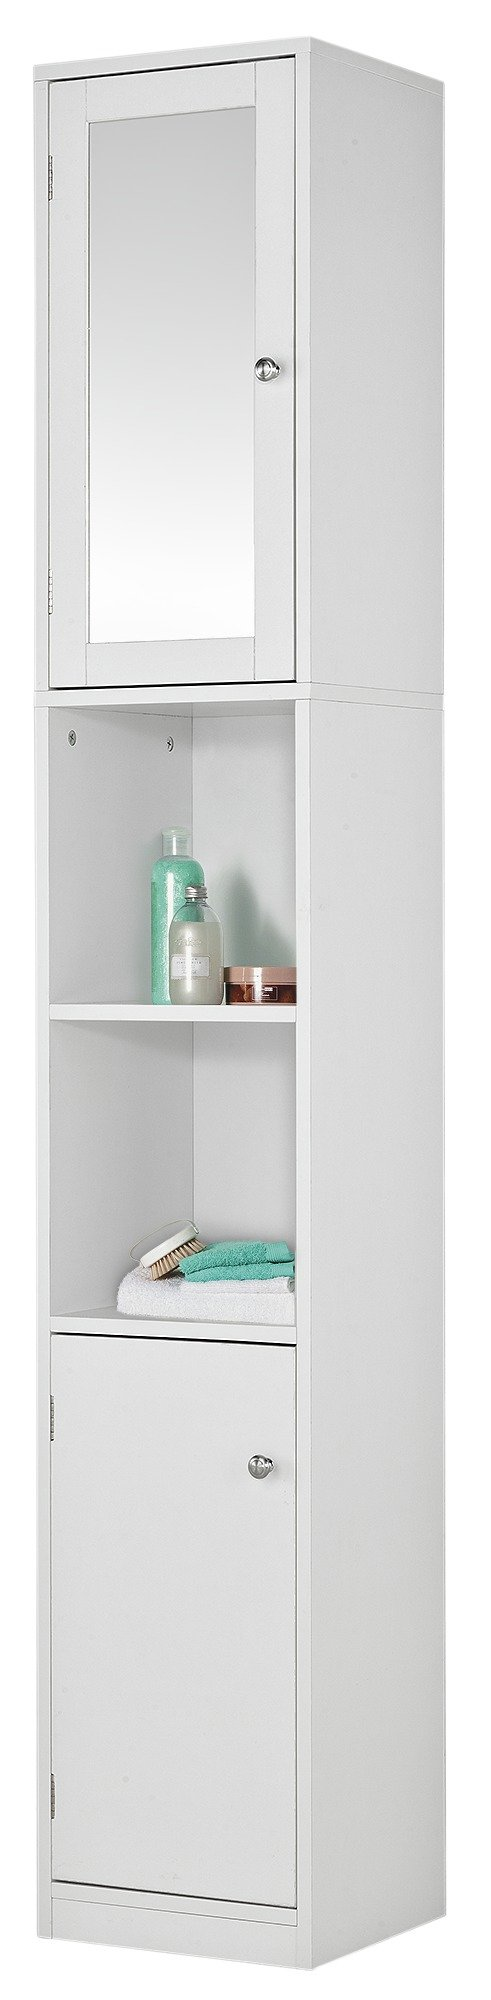 Tall Bathroom Cabinets buy home mirrored tall bathroom cabinet - white at argos.co.uk